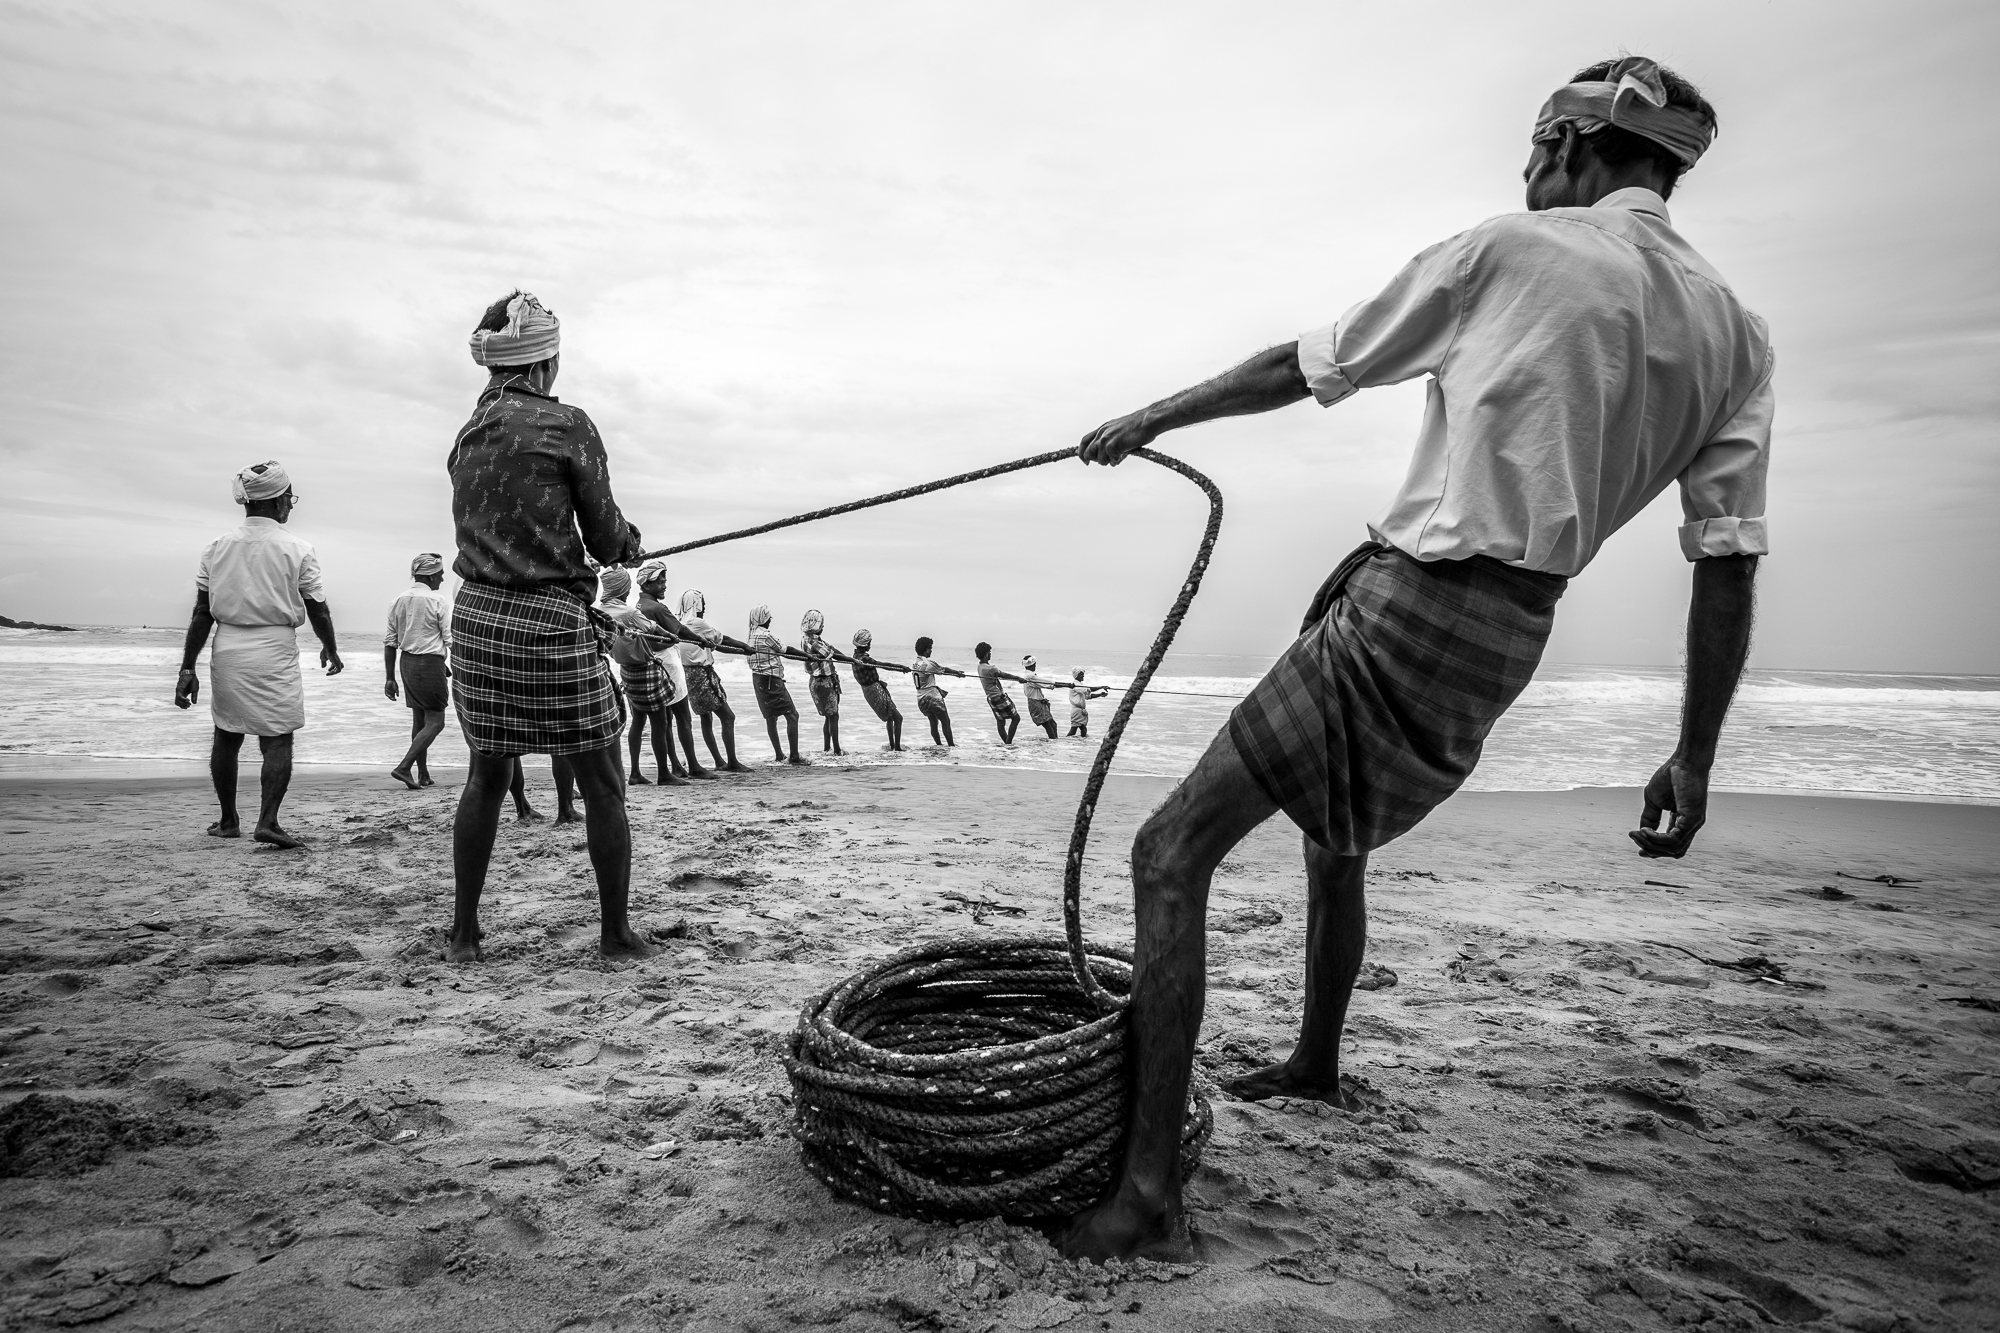 Black and white photograph, documentary, fishermen, kerala, india